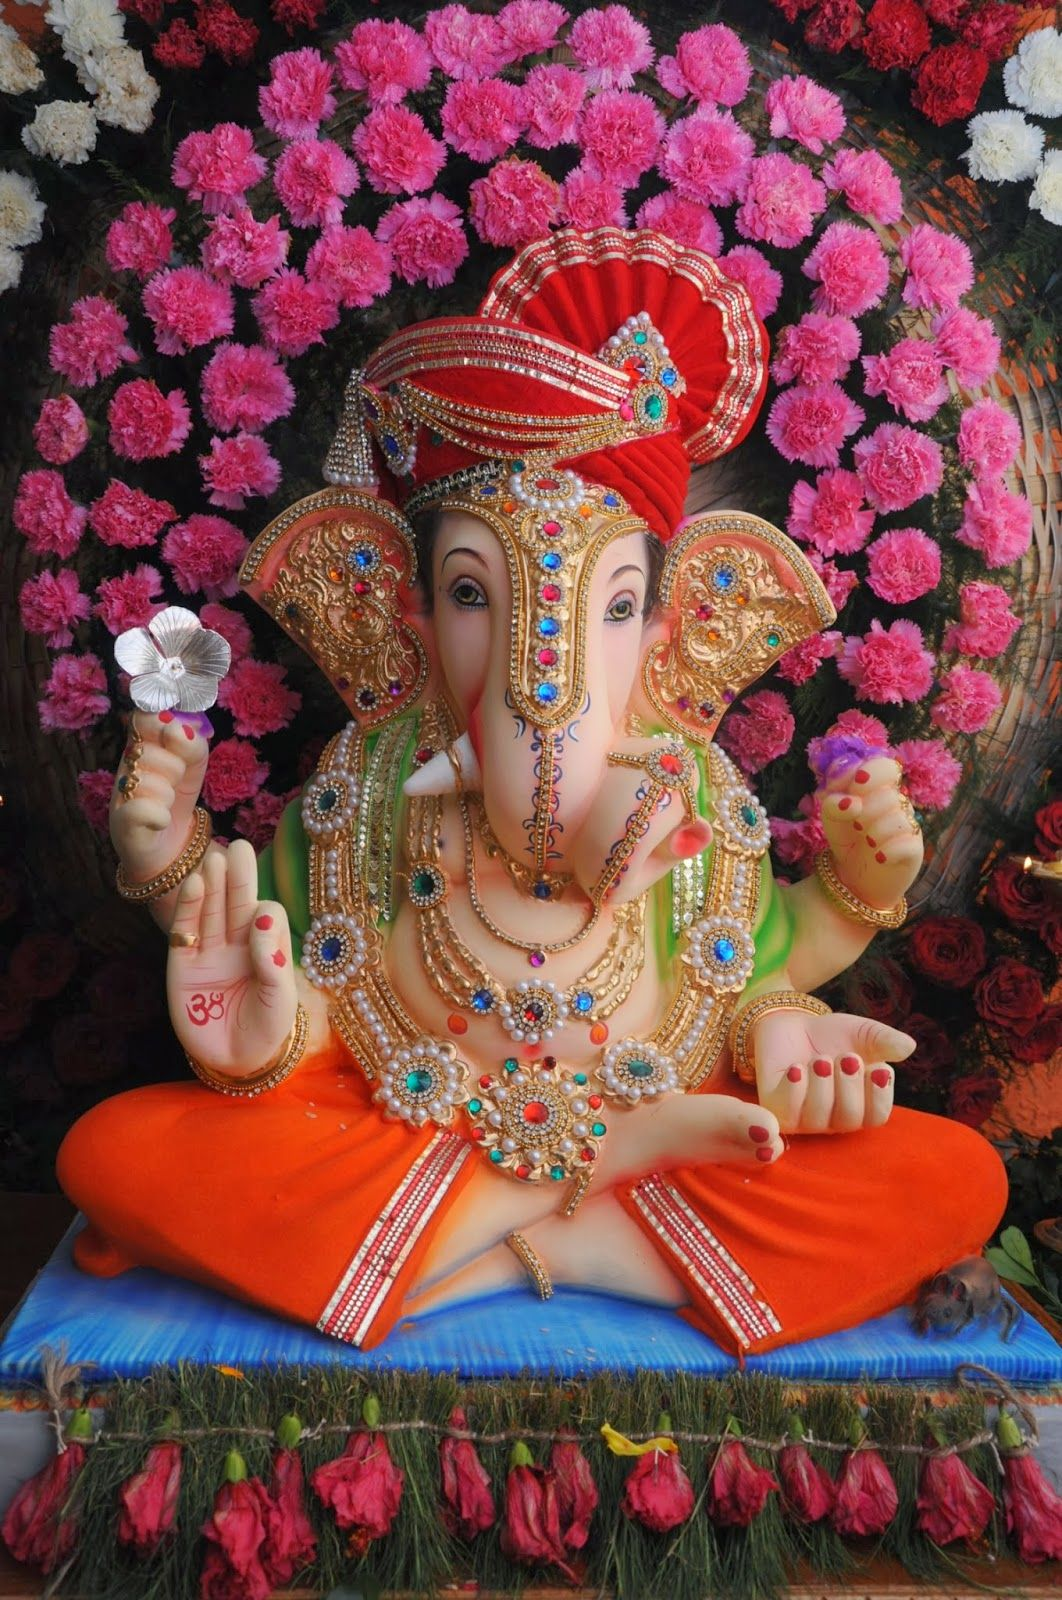 Pin By Amita Sharma Rai On Ganpati Pinterest Ganesh Ganesha And Shri Ganesh